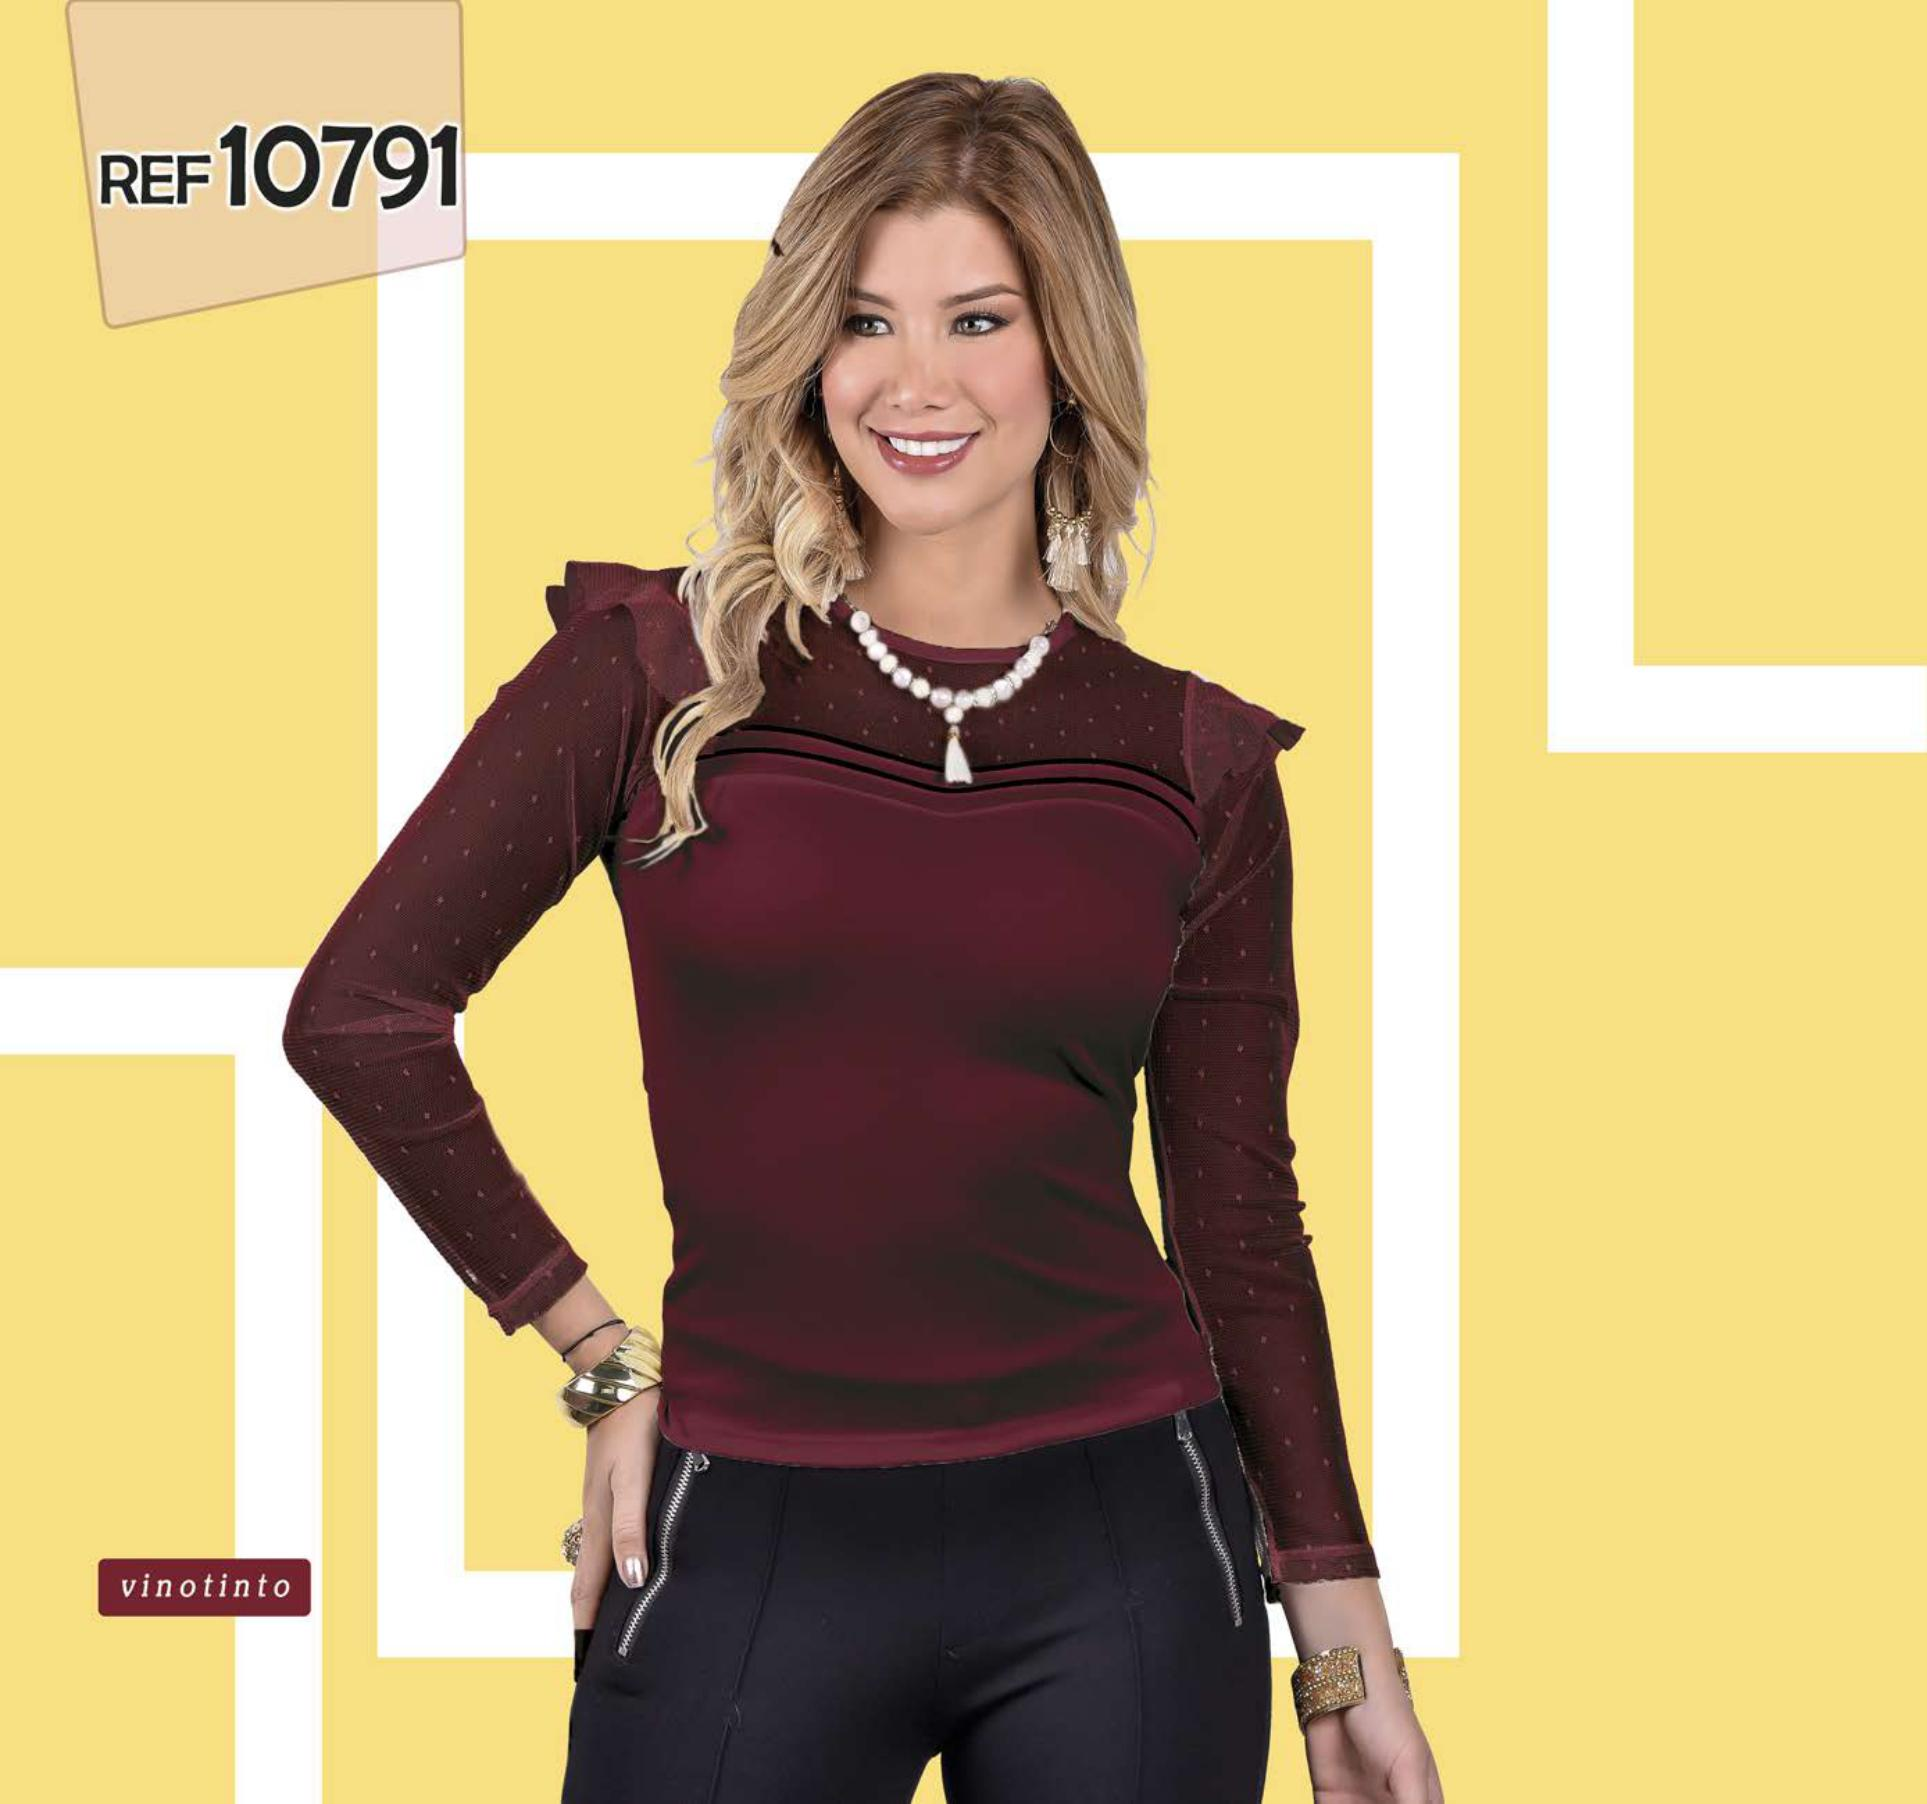 Colombian long-sleeved blouse with transparencies and details on the neck and chest